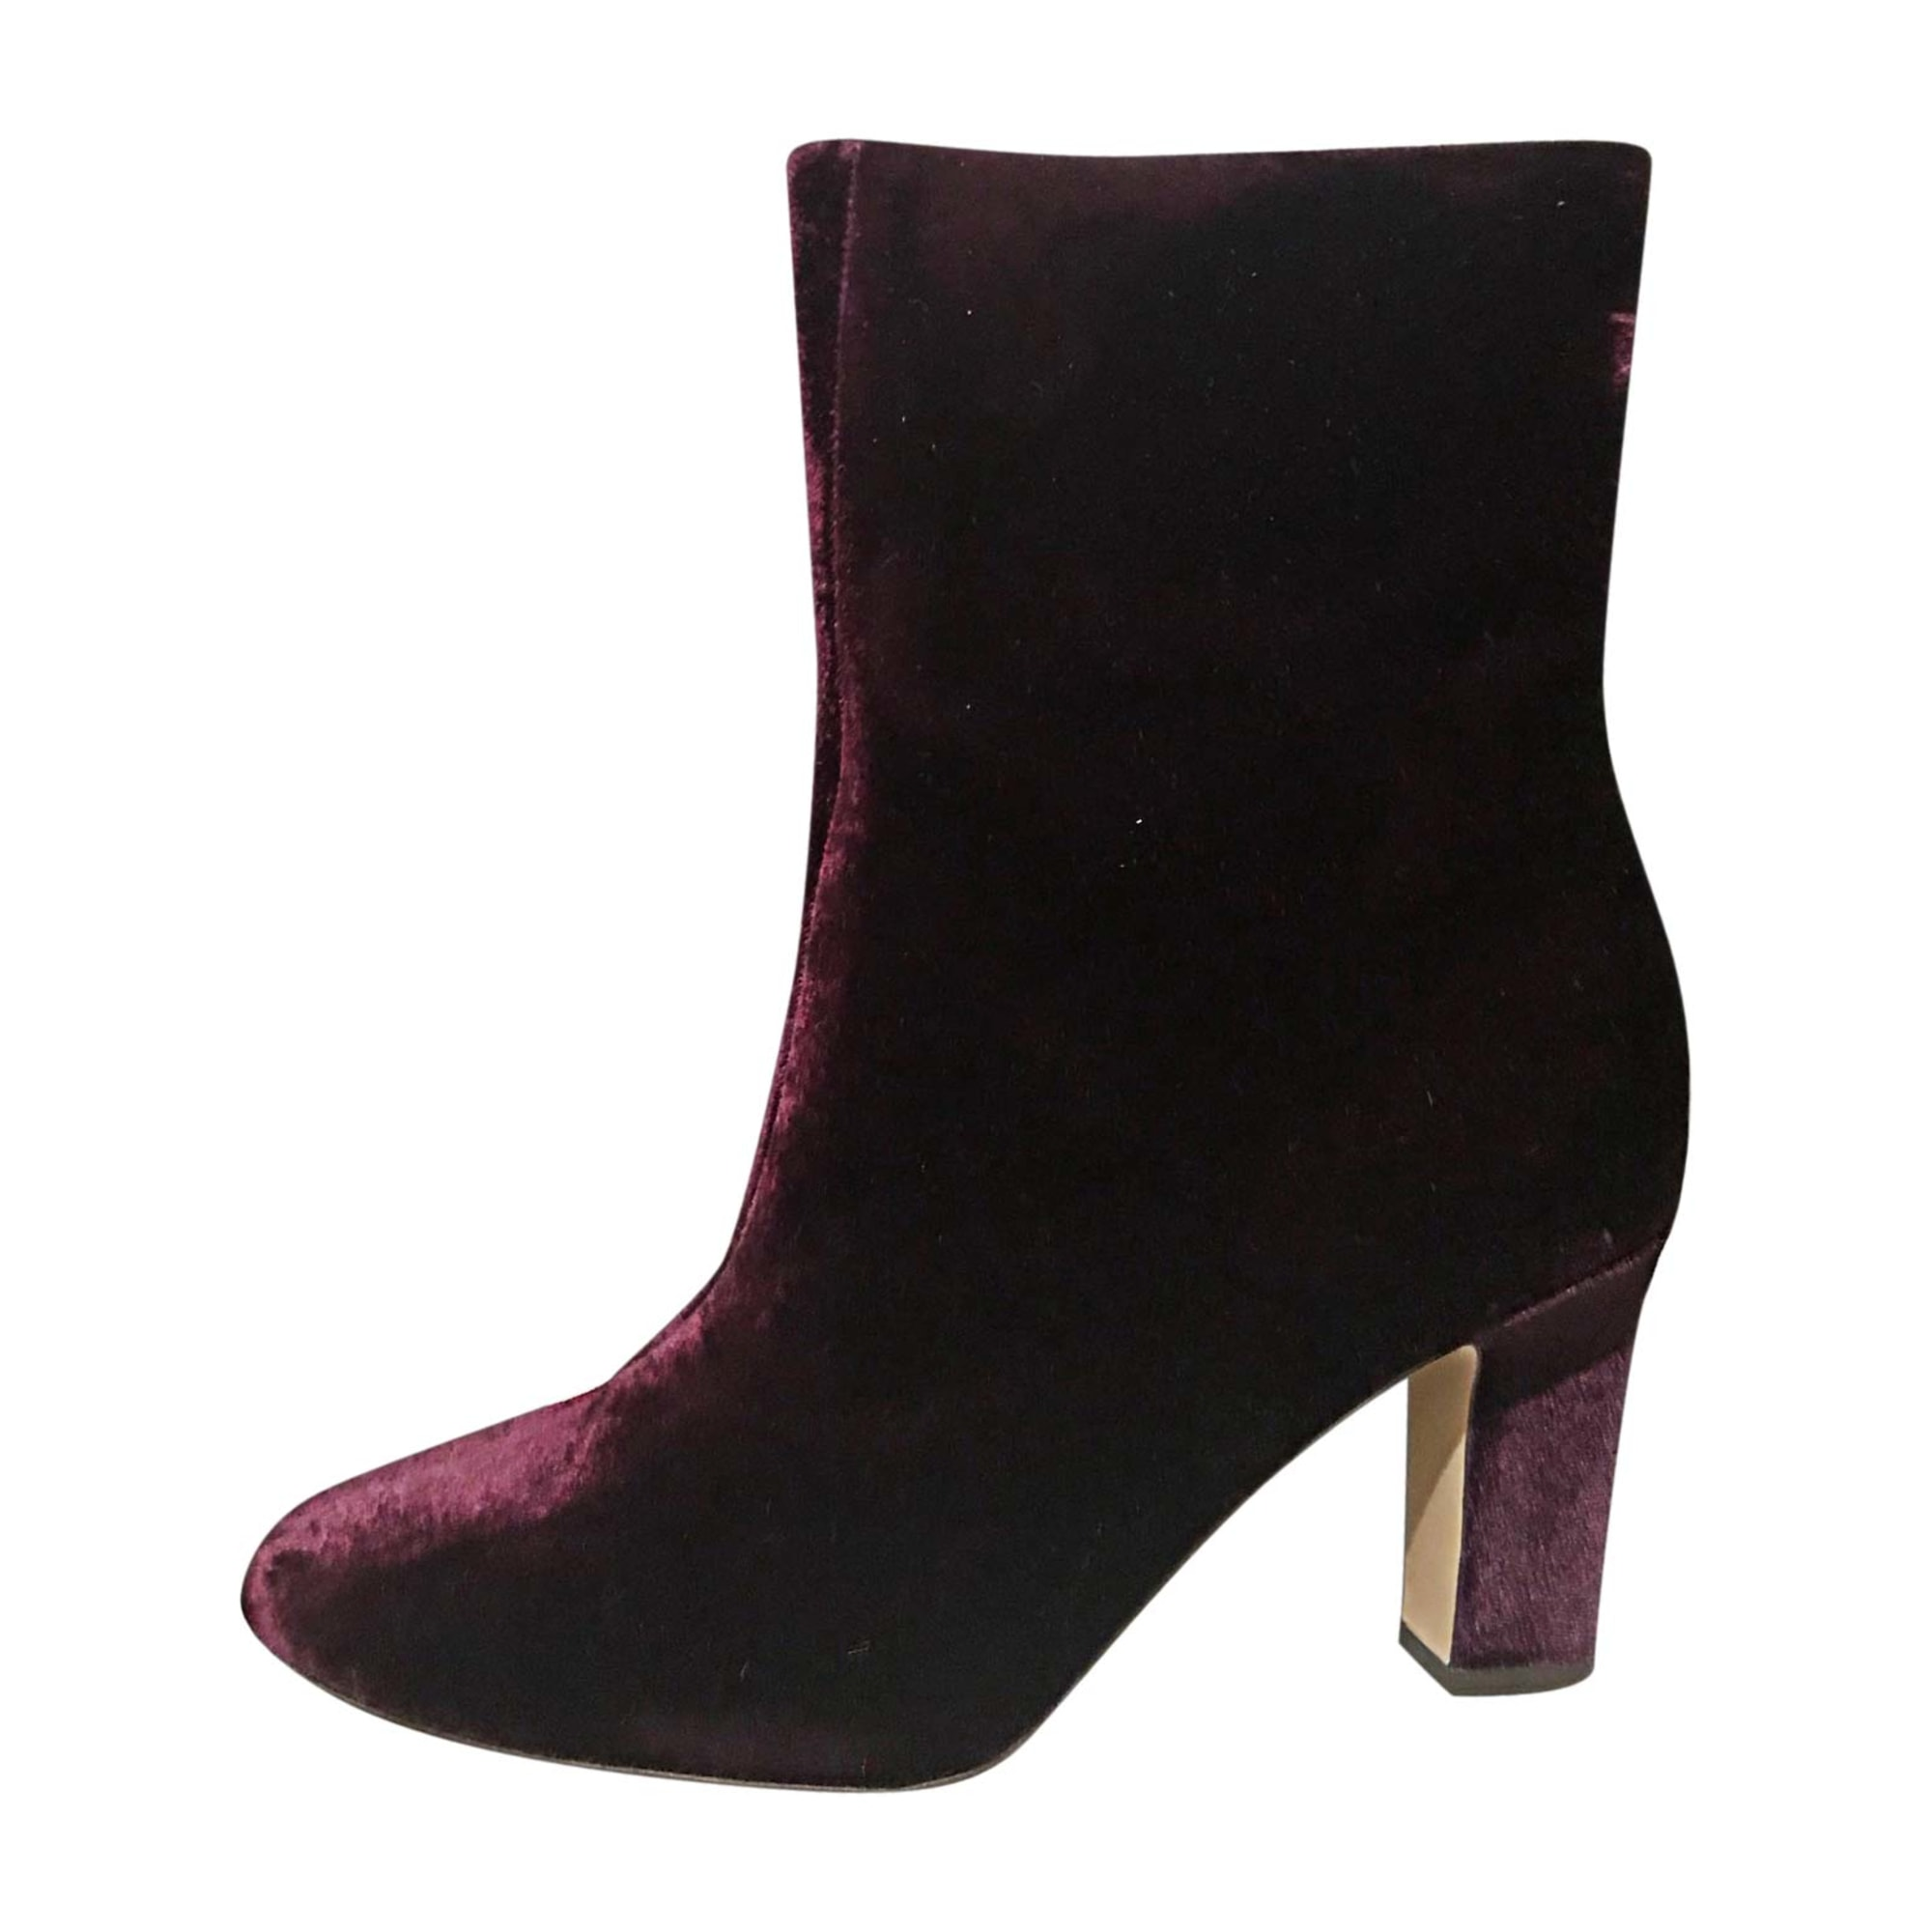 Wedge Ankle Boots RALPH LAUREN Red, burgundy